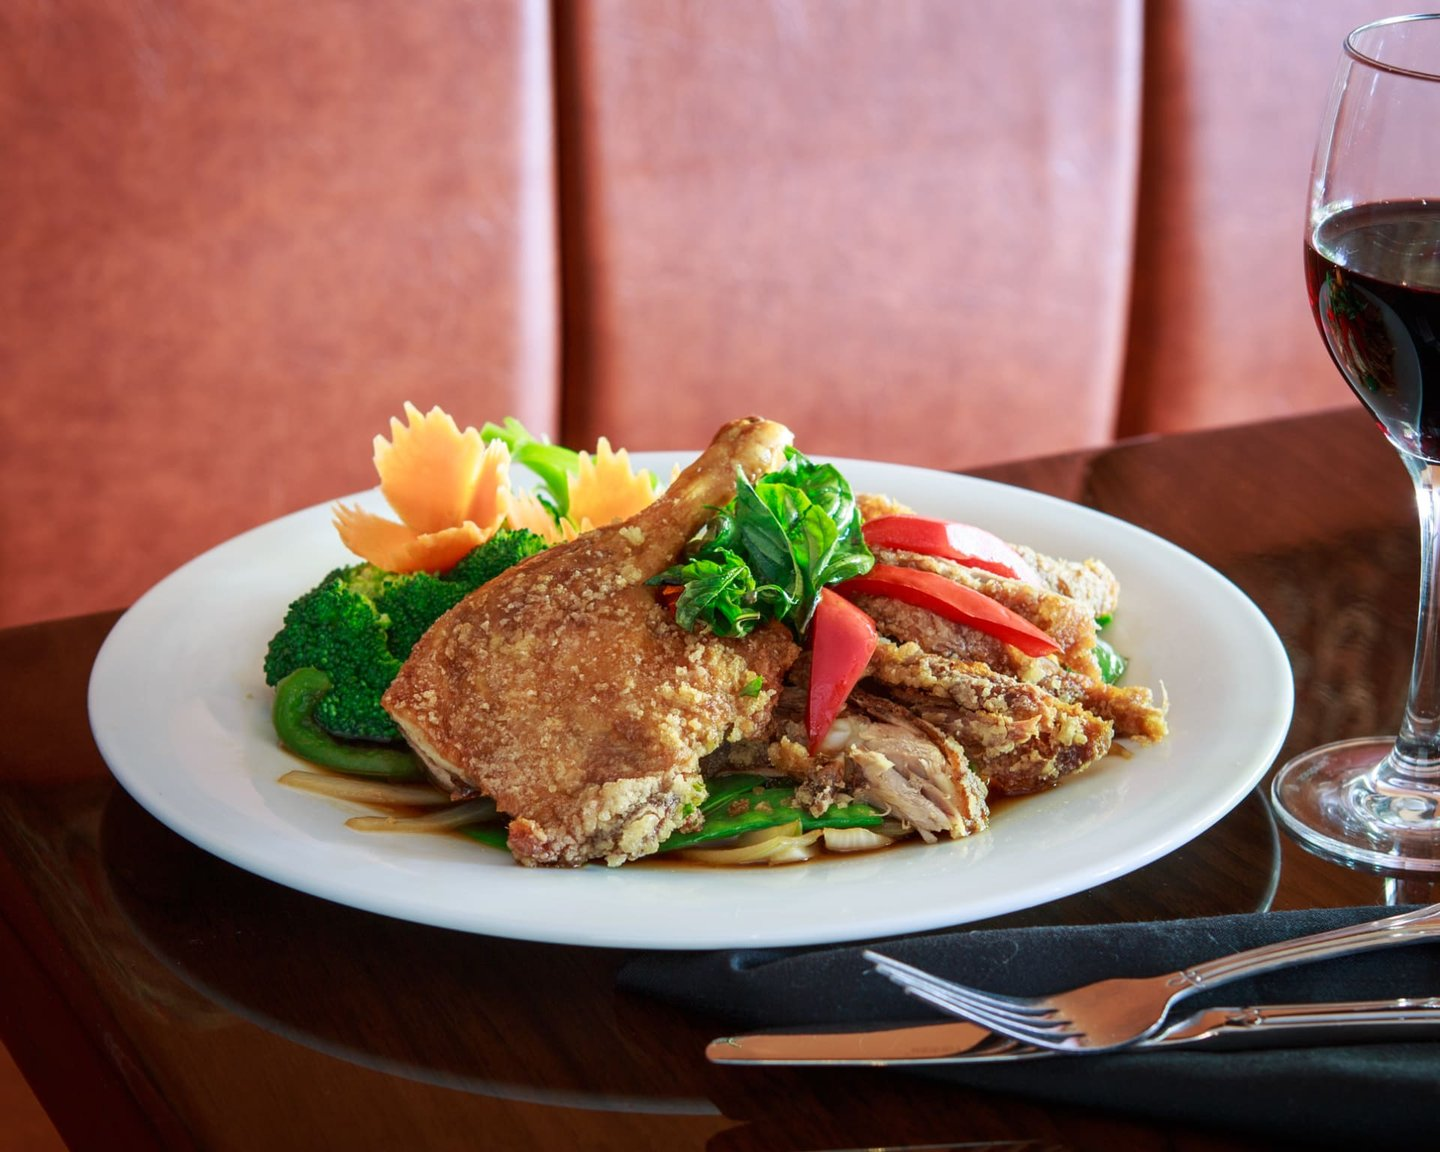 FRESH INGREDIENTS + AUTHENTIC KITCHEN = REALLY AWESOME THAI FOOD